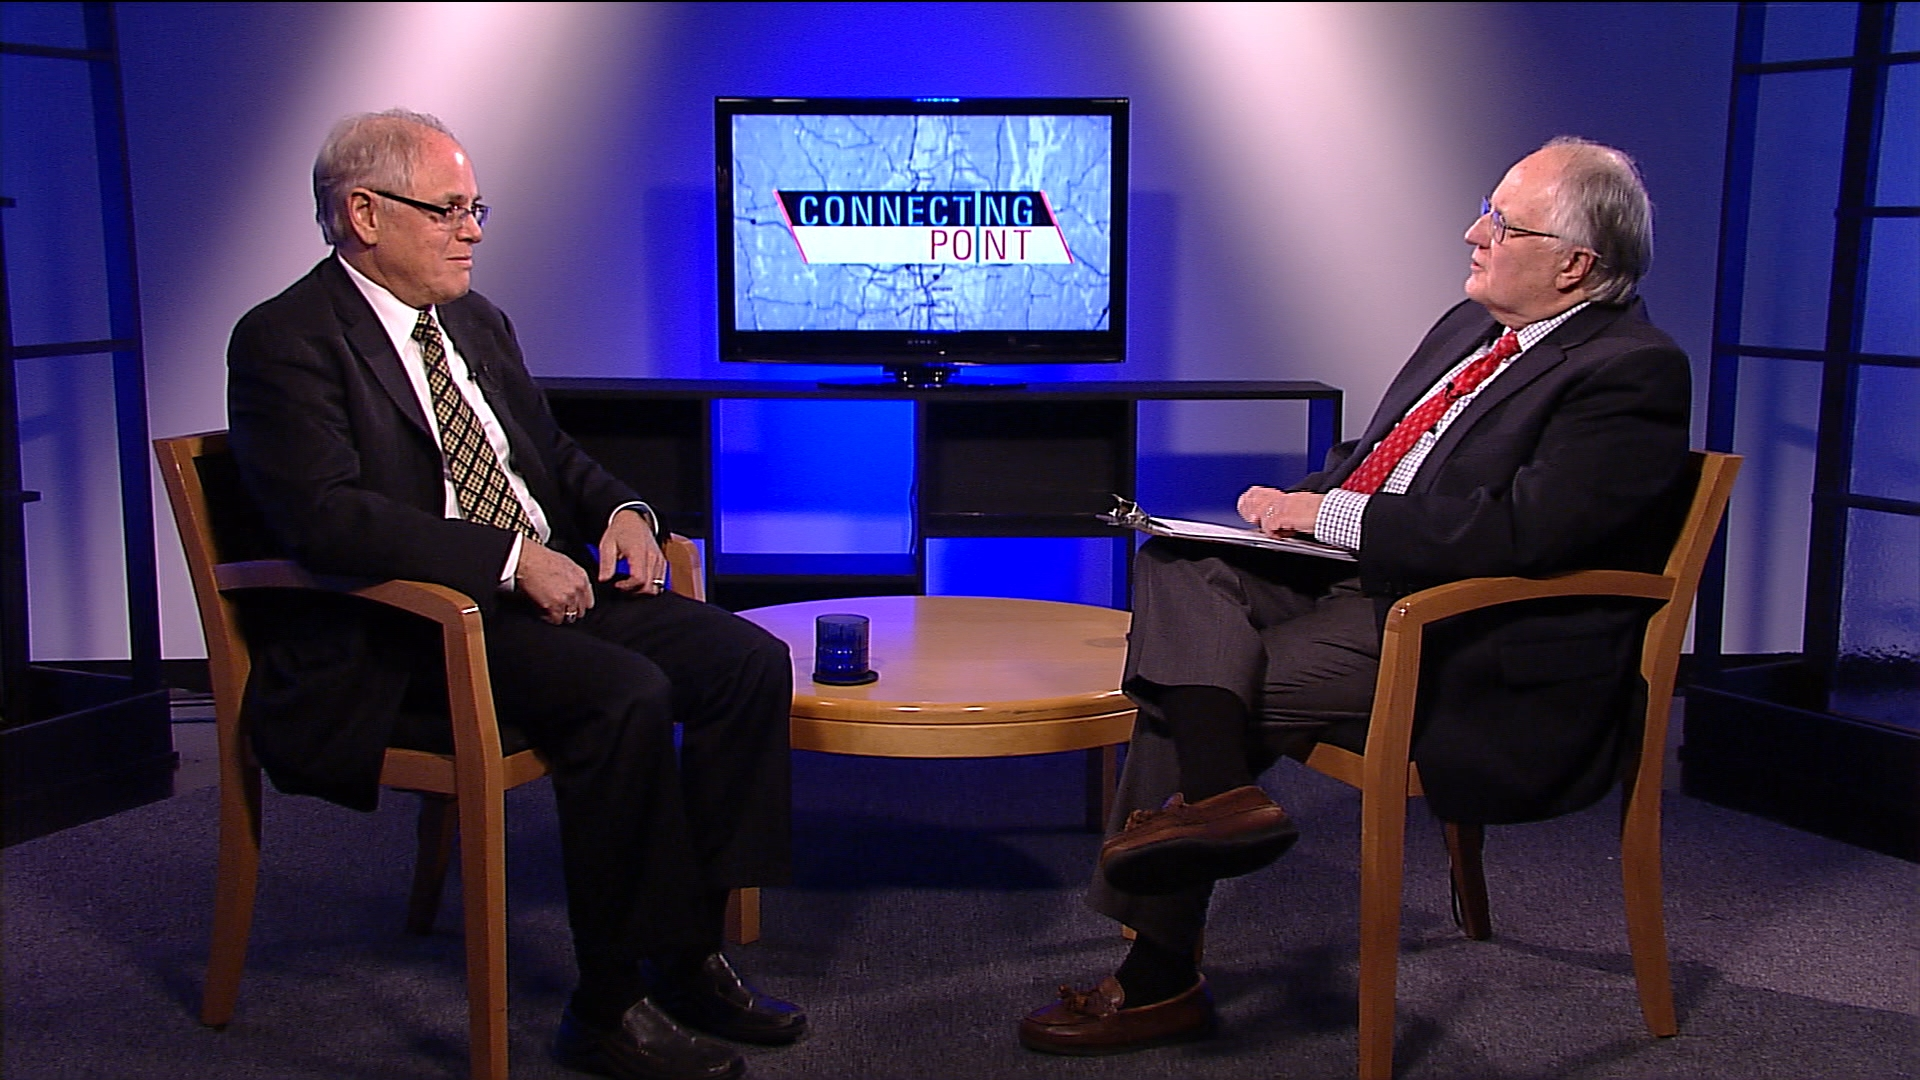 Atty Bill Newman, Western MA representative for the American Civil Liberties Union, discusses the recent controversy surrounding the Hampshire College flag.